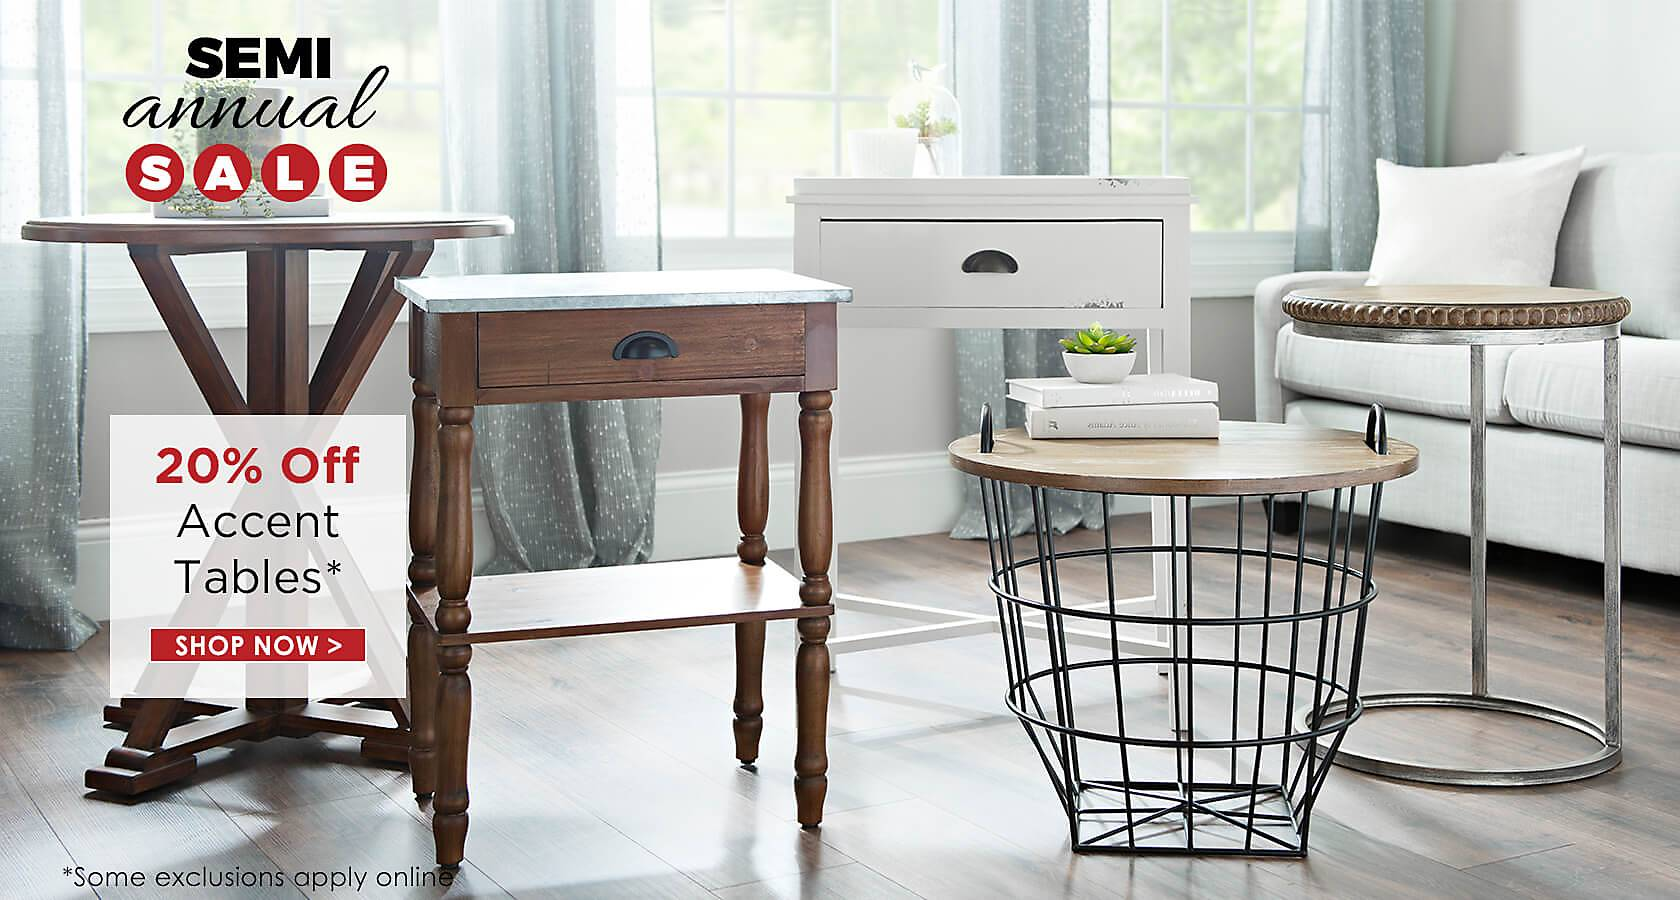 20% Off Accent Tables - Shop Now